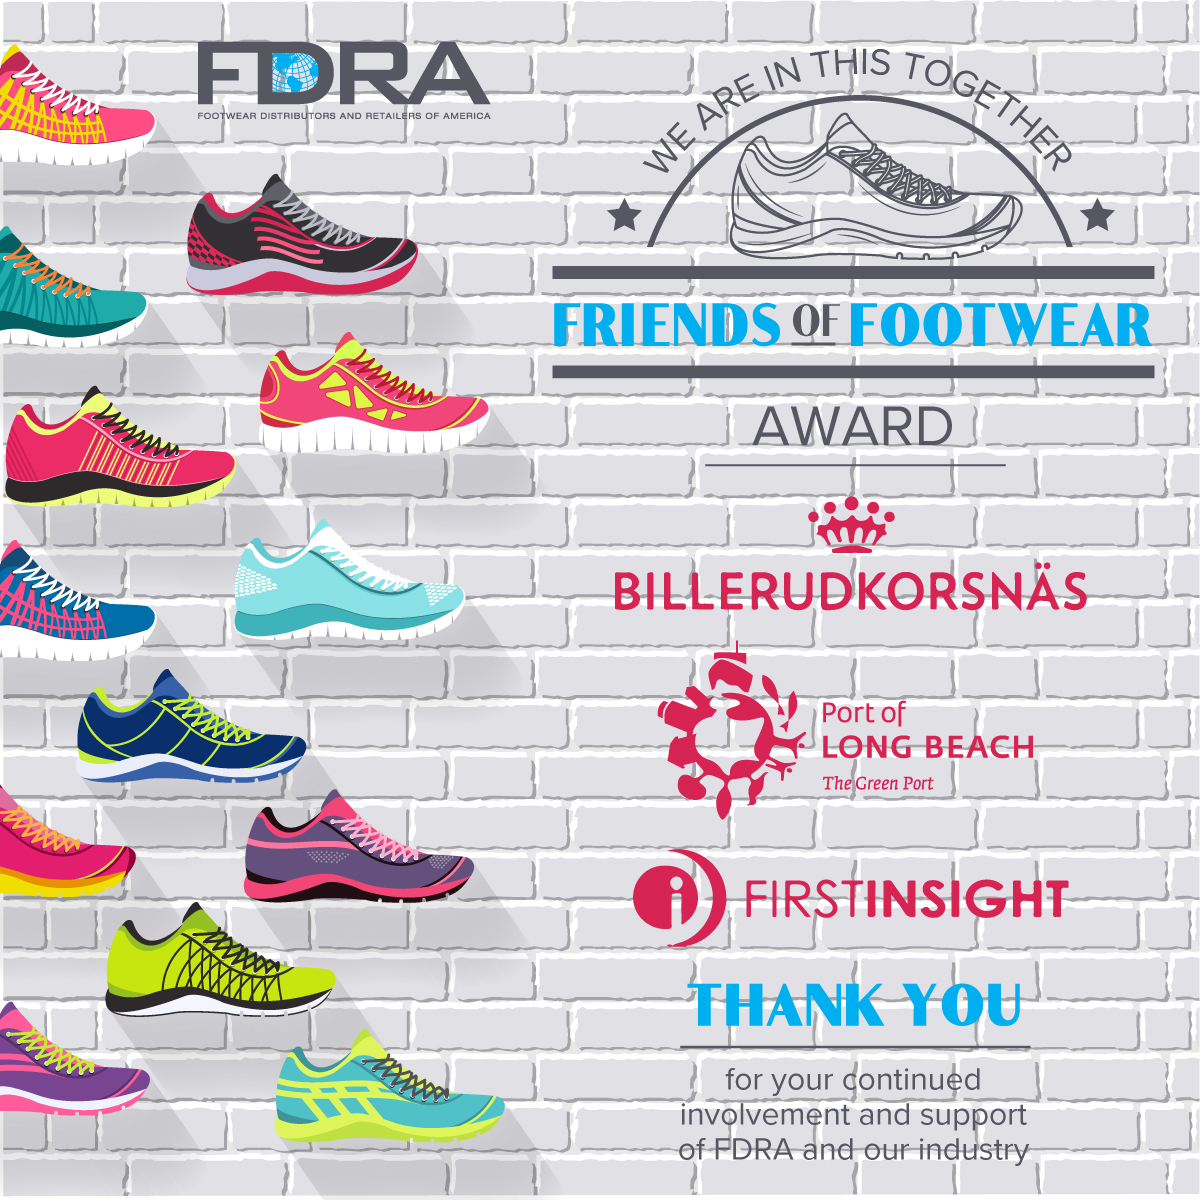 Congrats to our Friends of Footwear award winners @BillerudKorsnas, @FirstInsight and @portoflongbeach. Their outstanding work, support, and dedication to FDRA and the footwear industry has created lasting positive impacts and our industry is honored to call them friends! pic.twitter.com/O8hpBsFdUp